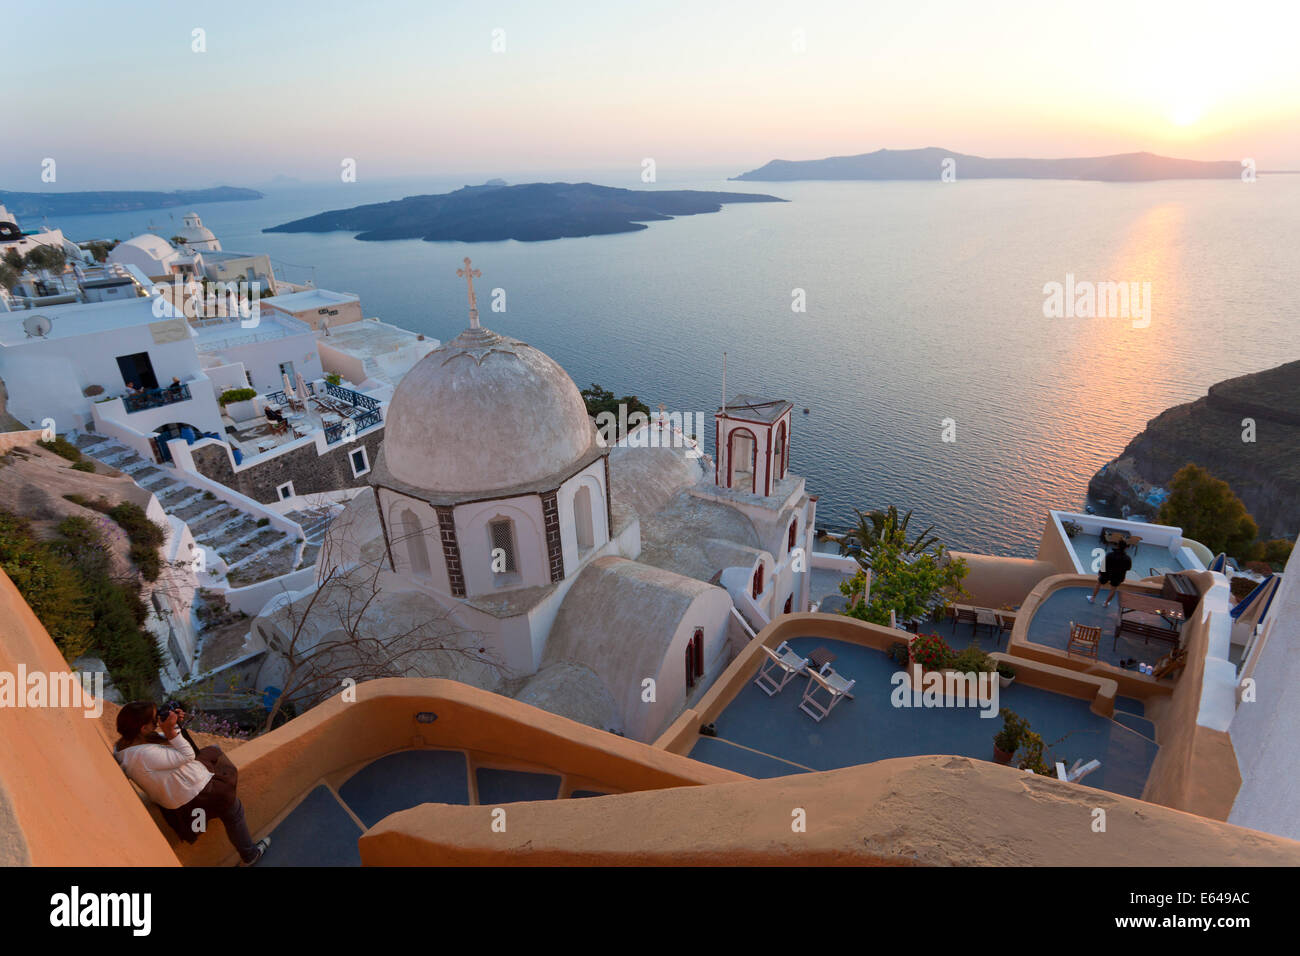 Church & Fira town at sunset, Fira, Santorini (Thira), Cyclades, Greece - Stock Image